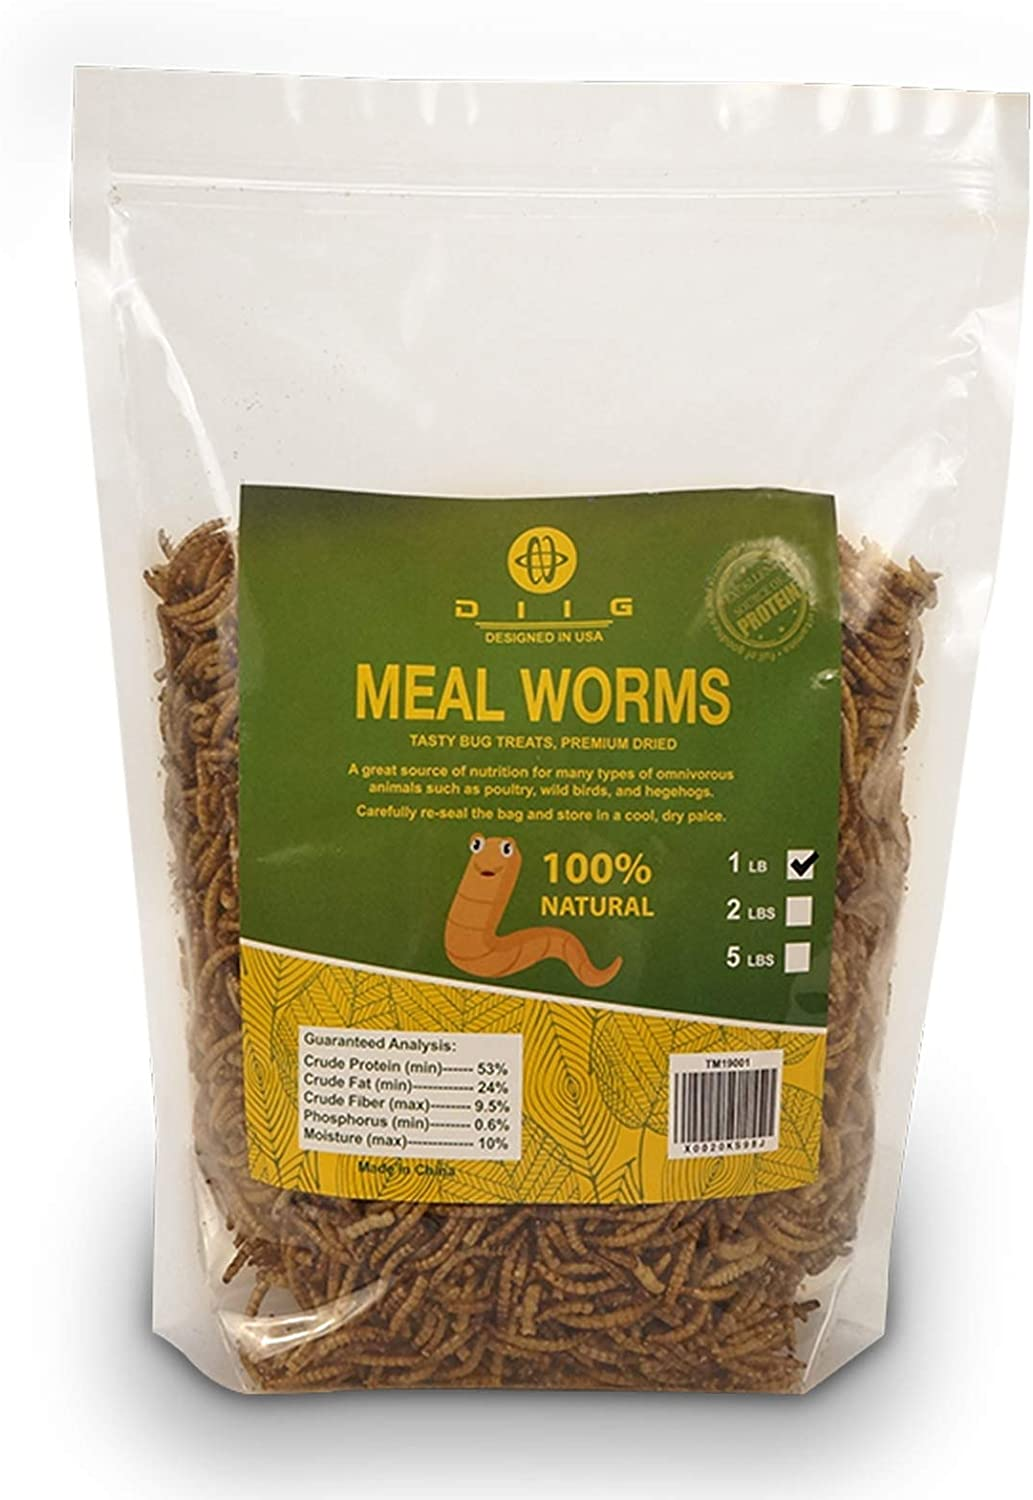 diig Non-GMO Dried Mealworms - Treats for Birds Chickens Hedgehog Hamster Fish Reptile Turtles, 1 lb